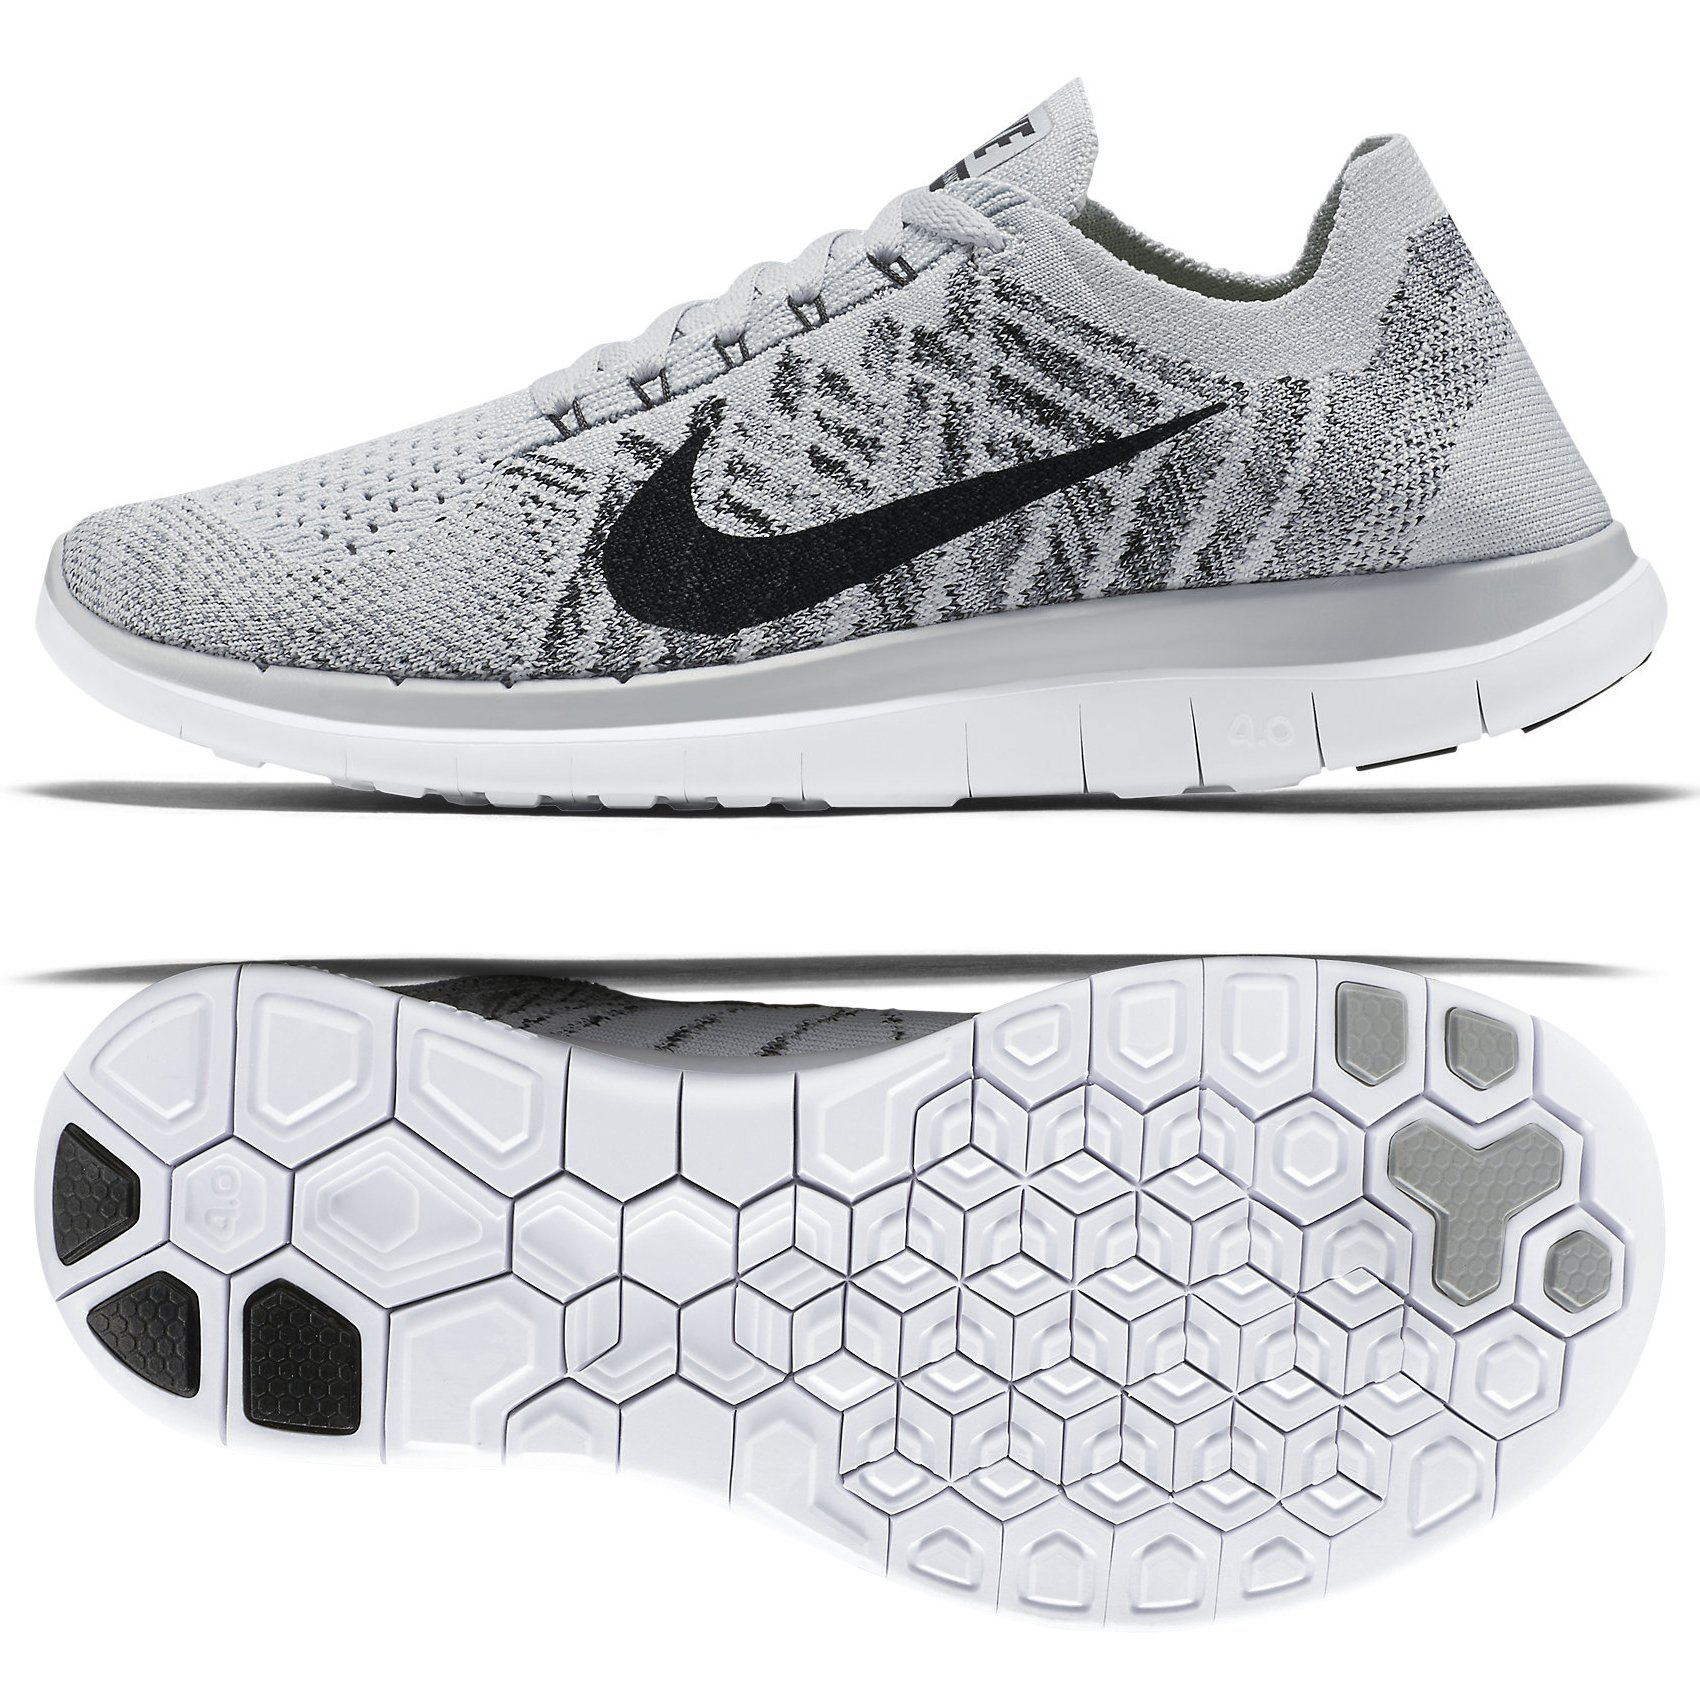 reputable site 30b99 e0385 Galleon - Nike Free 4.0 Flyknit 717076-005 Pure Platinum Black White  Women s Running Shoes (Size 8)